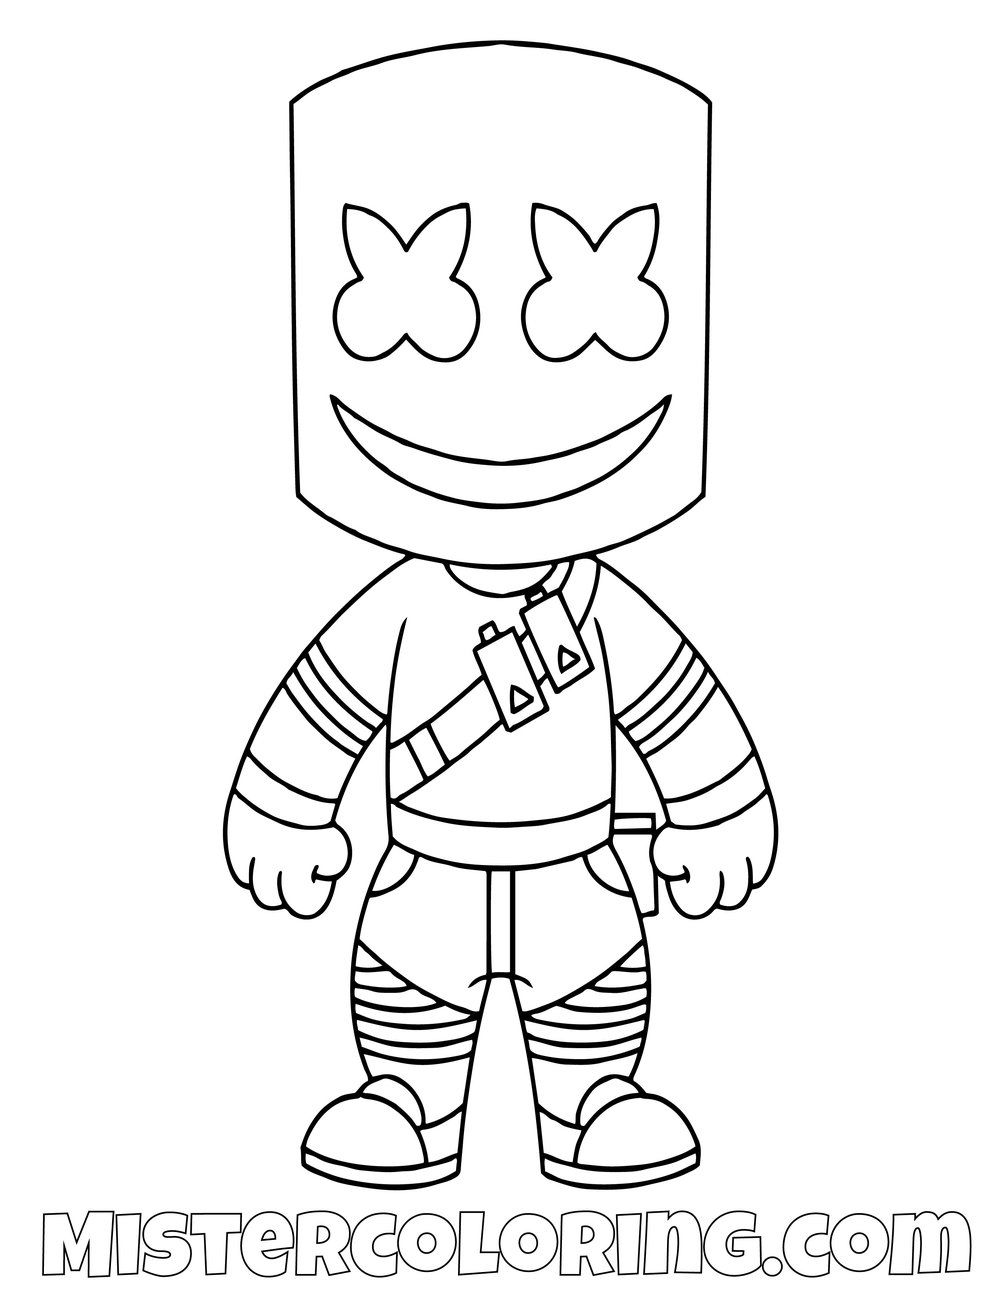 Free Marshmello Chibi Skin Fortnite Coloring Page For Kids Cool